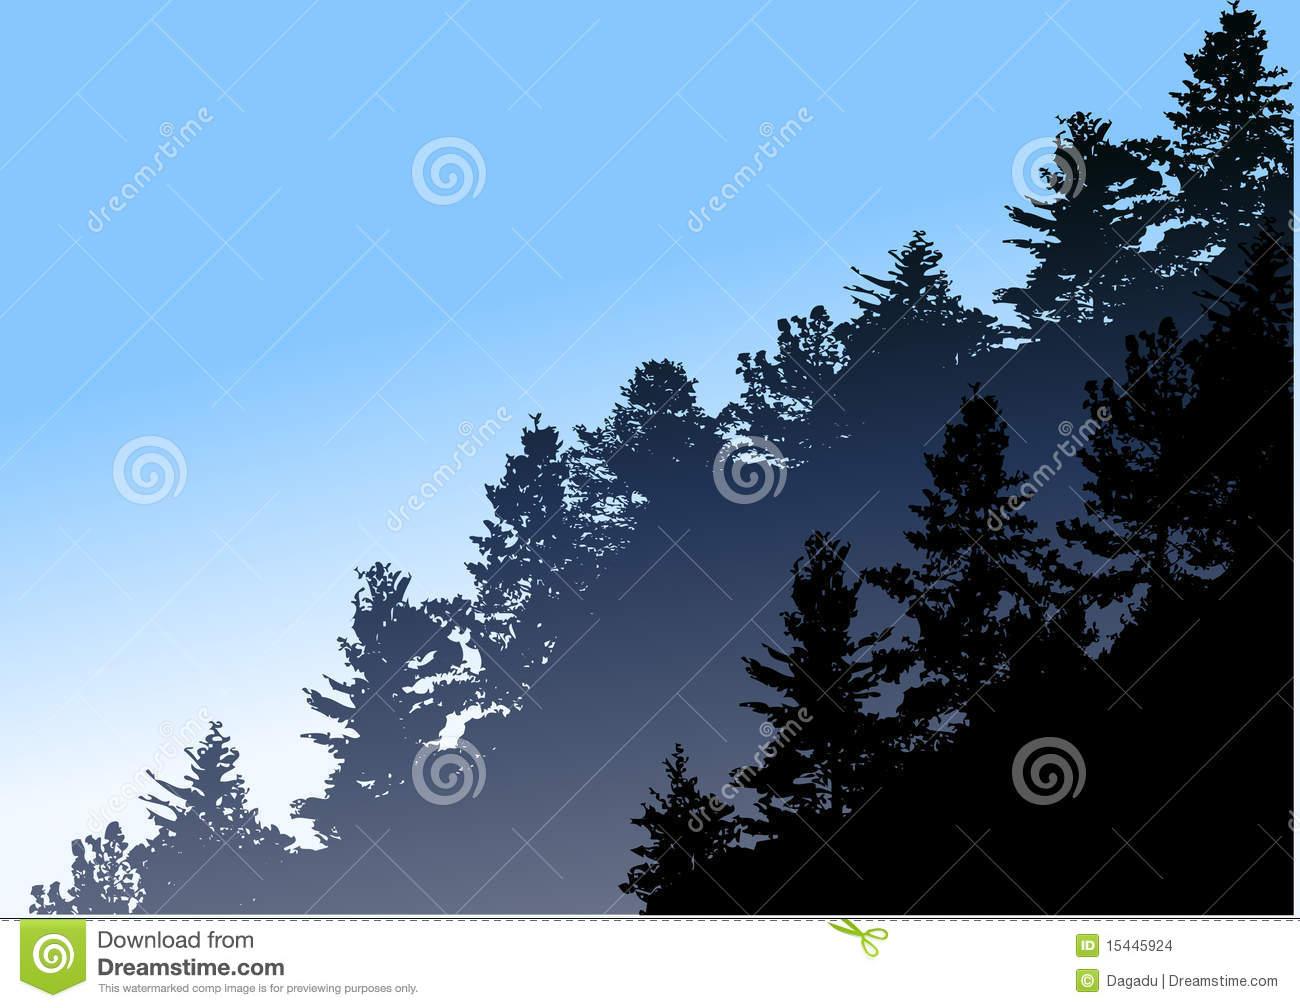 Pine forest clipart.